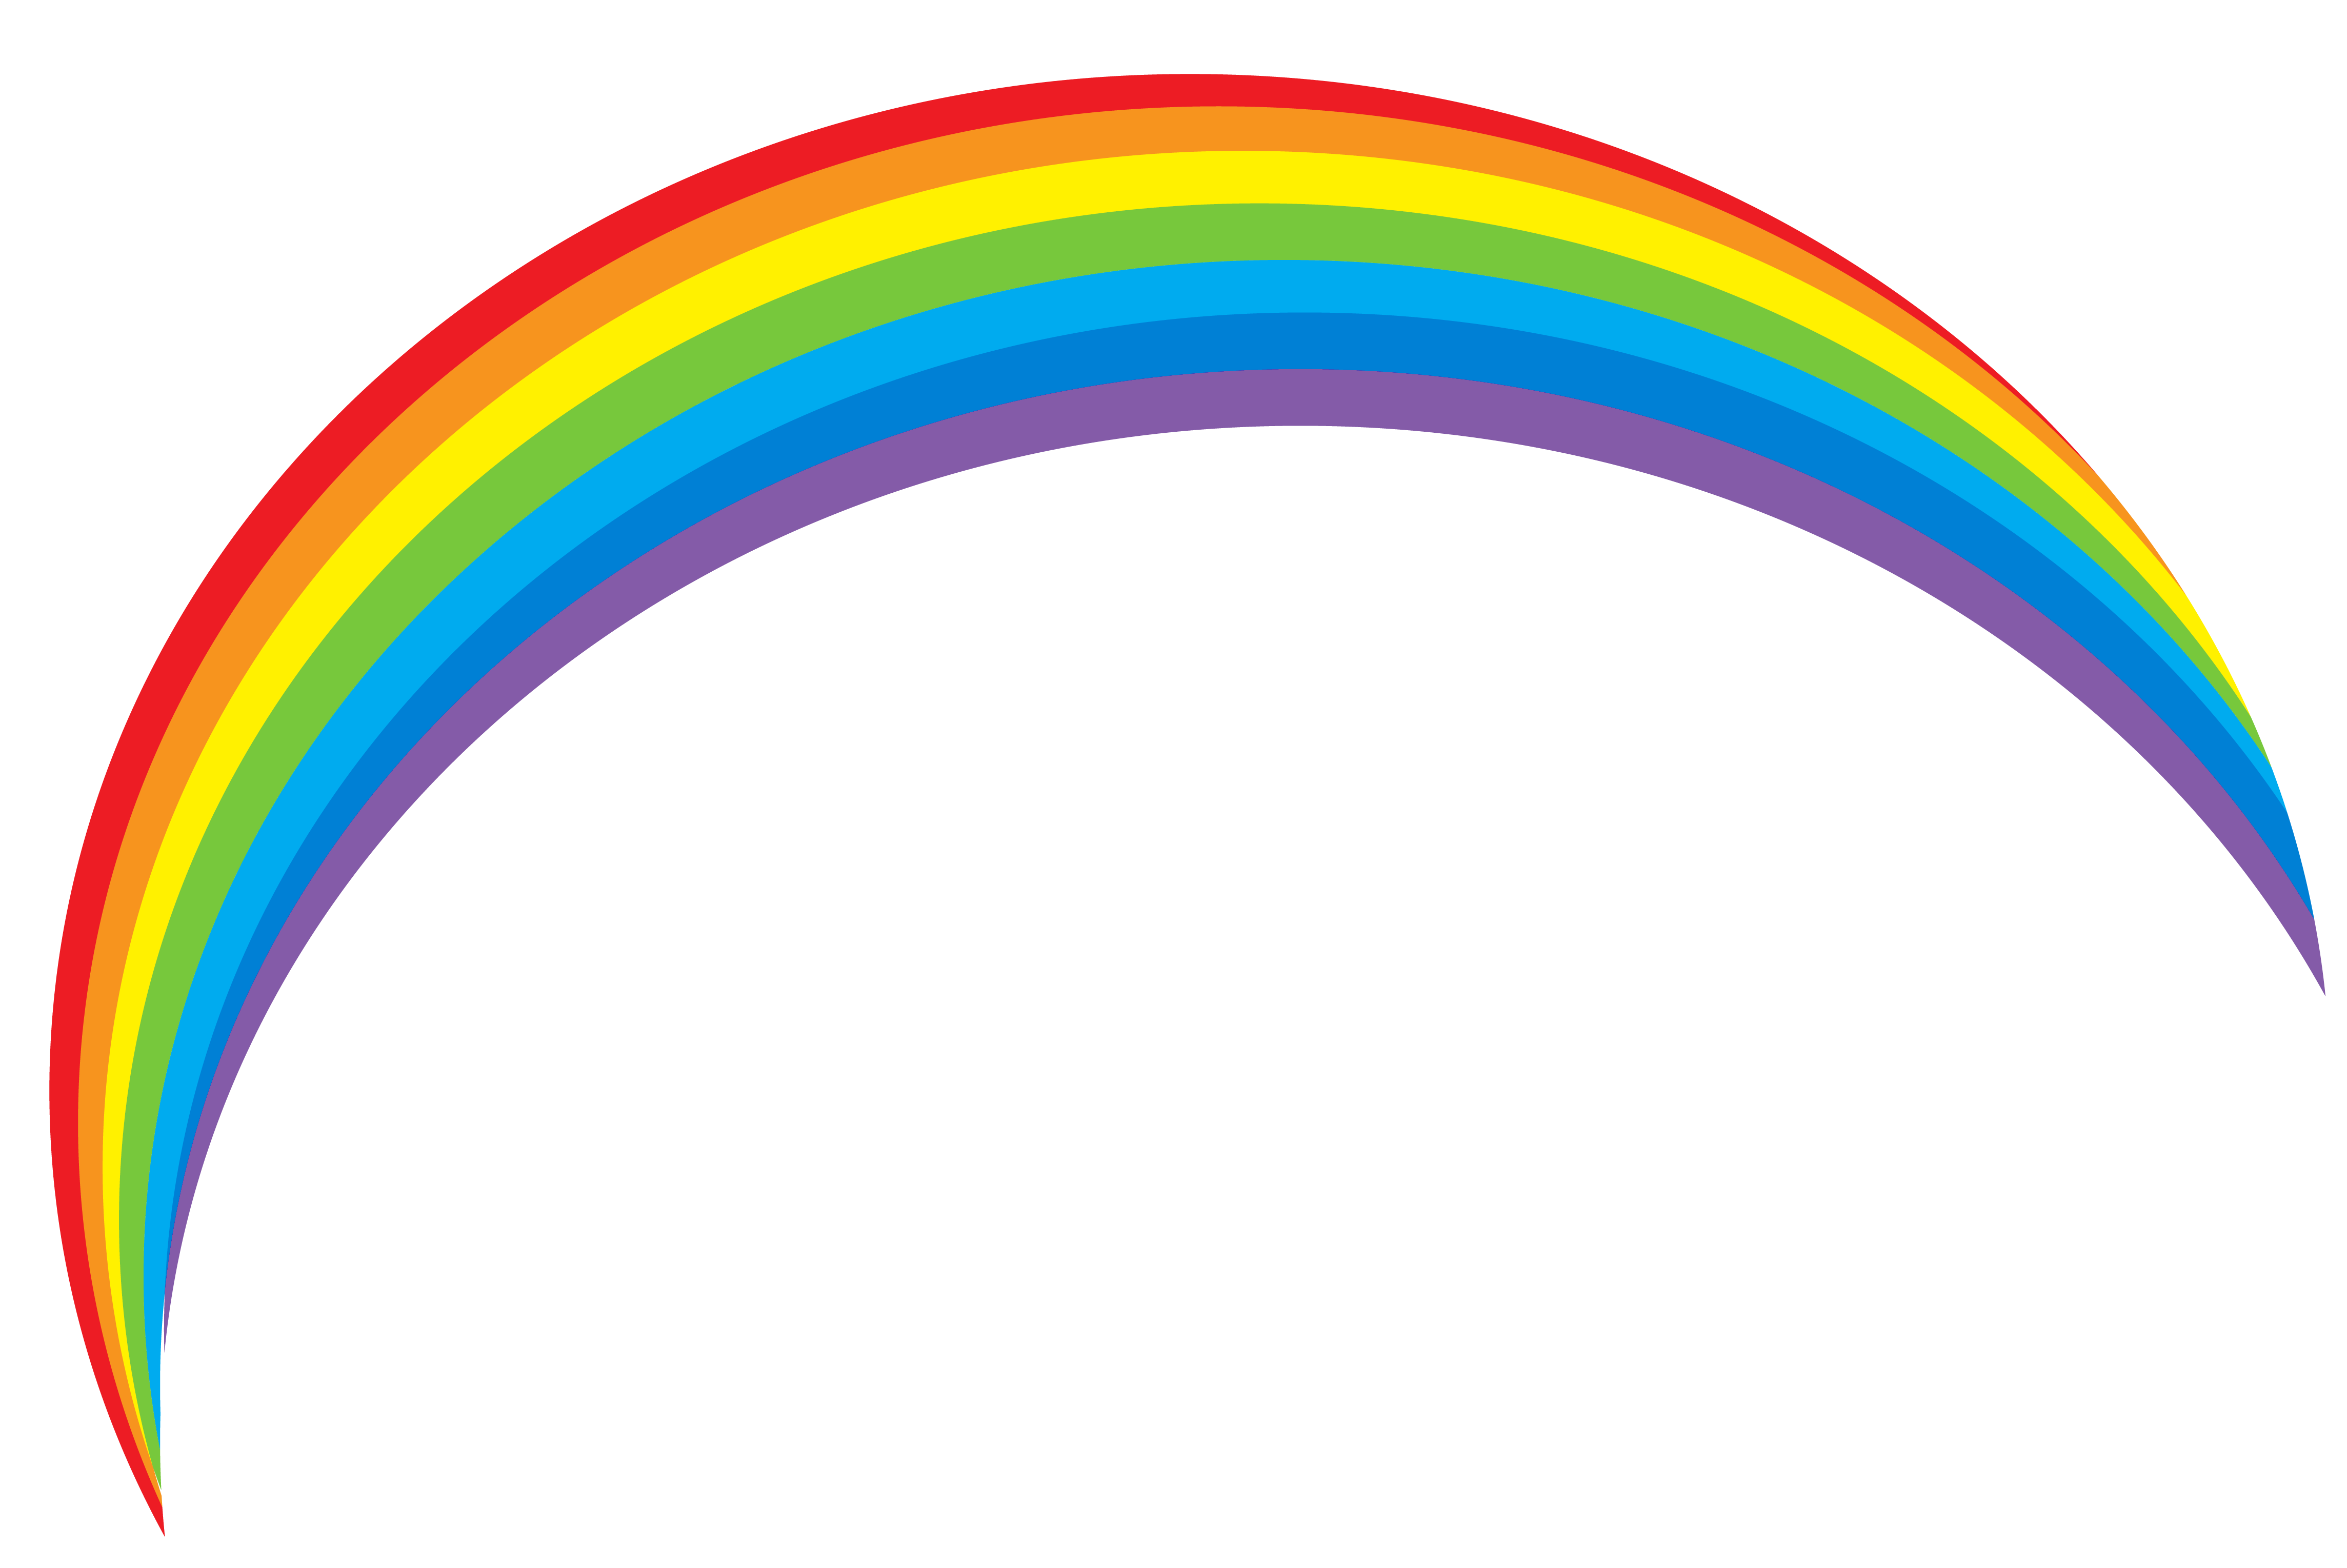 rainbow clipart transparent clip rainbows cliparts background clipartix clipartcow hd cartoon library views vector attribution forget link don clipartbarn clipartmag